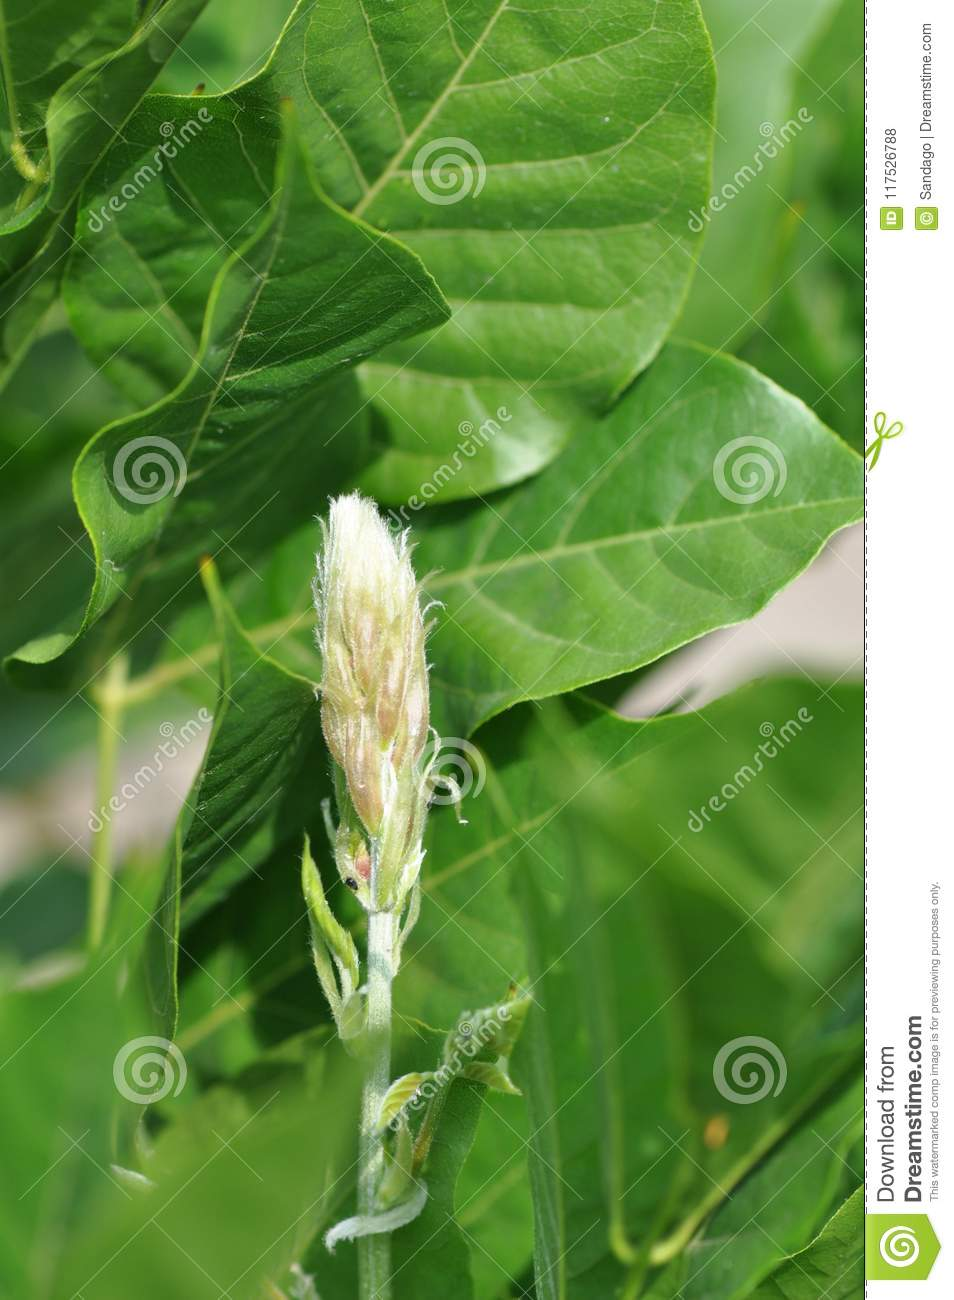 Wisteria Flower Buds Stock Photo Image Of Decorative 117526788